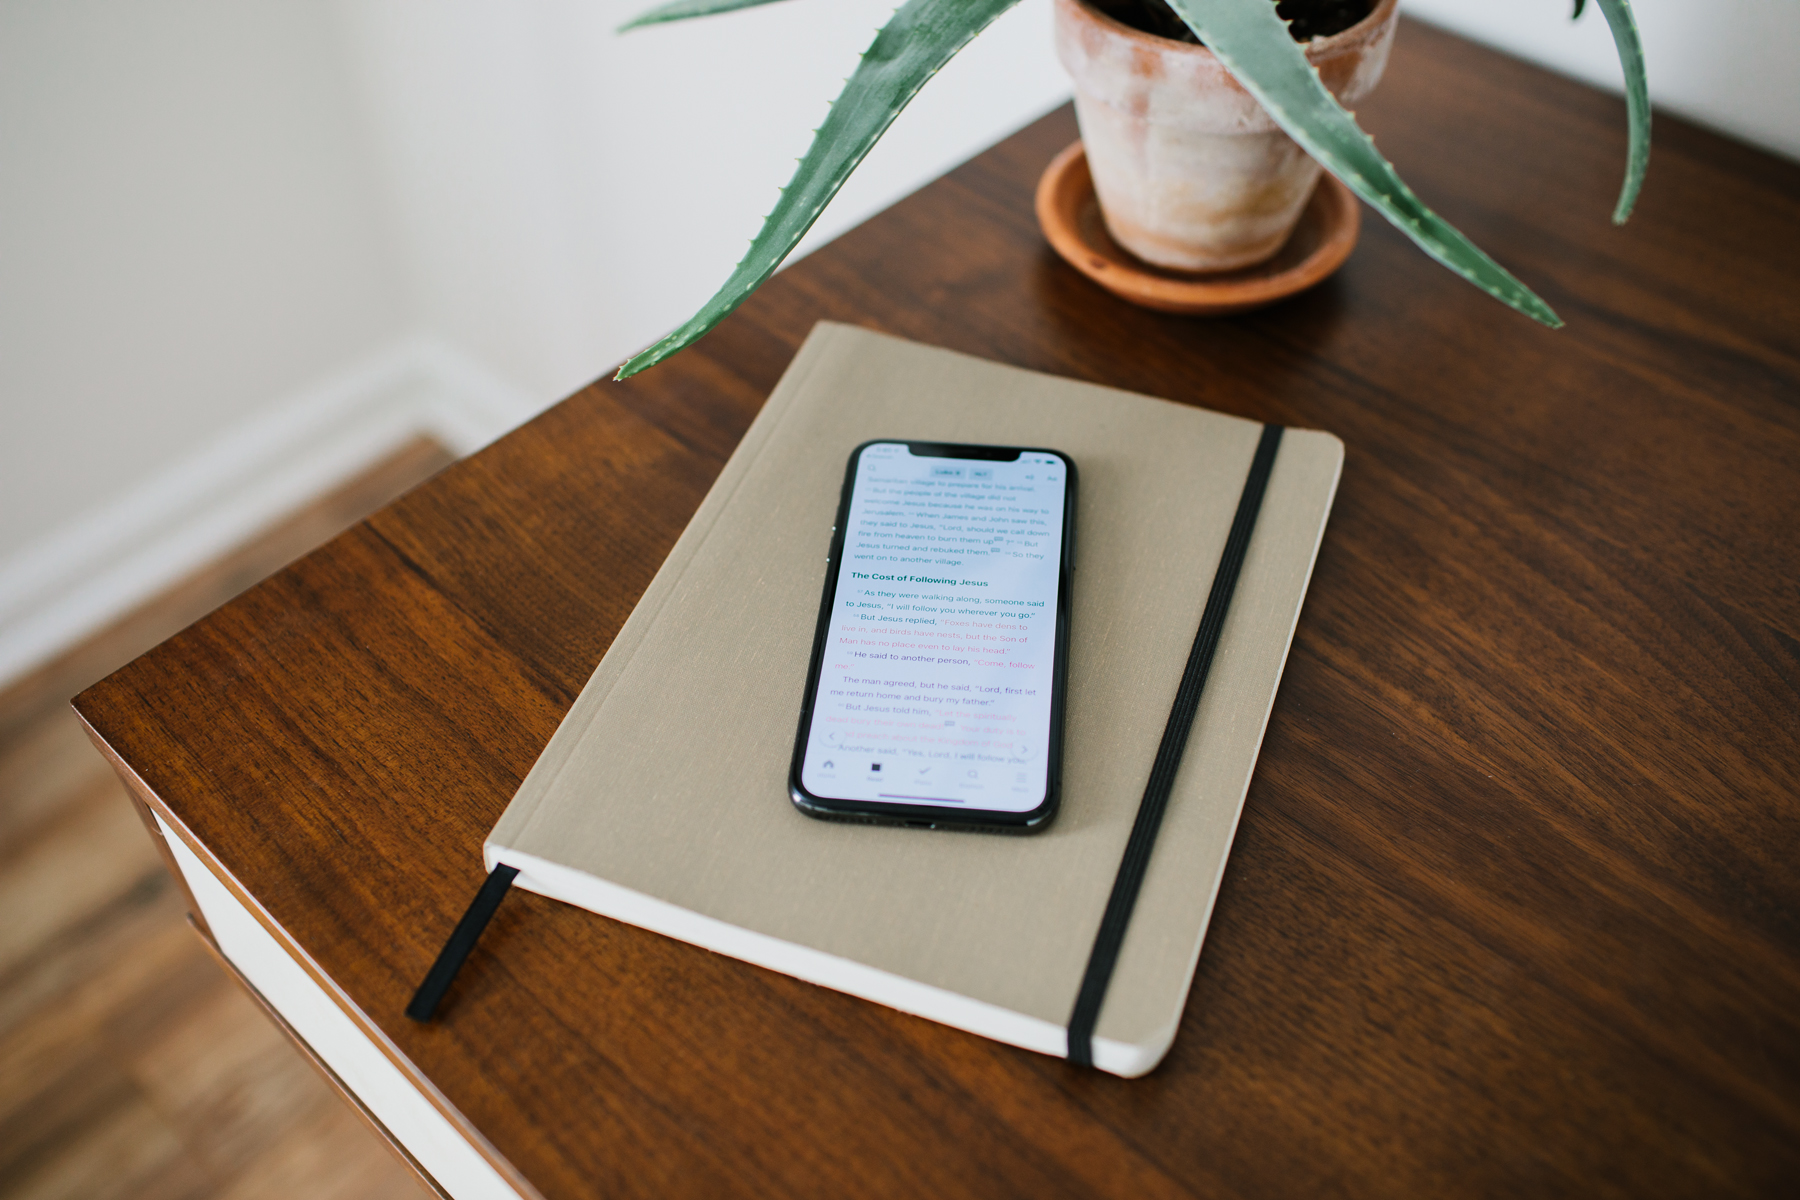 BIBLE APP - Download the free app and access your bookmarks, notes, and reading plans from anywhere. Enjoy hundreds of versions, including audio, all on your mobile device.